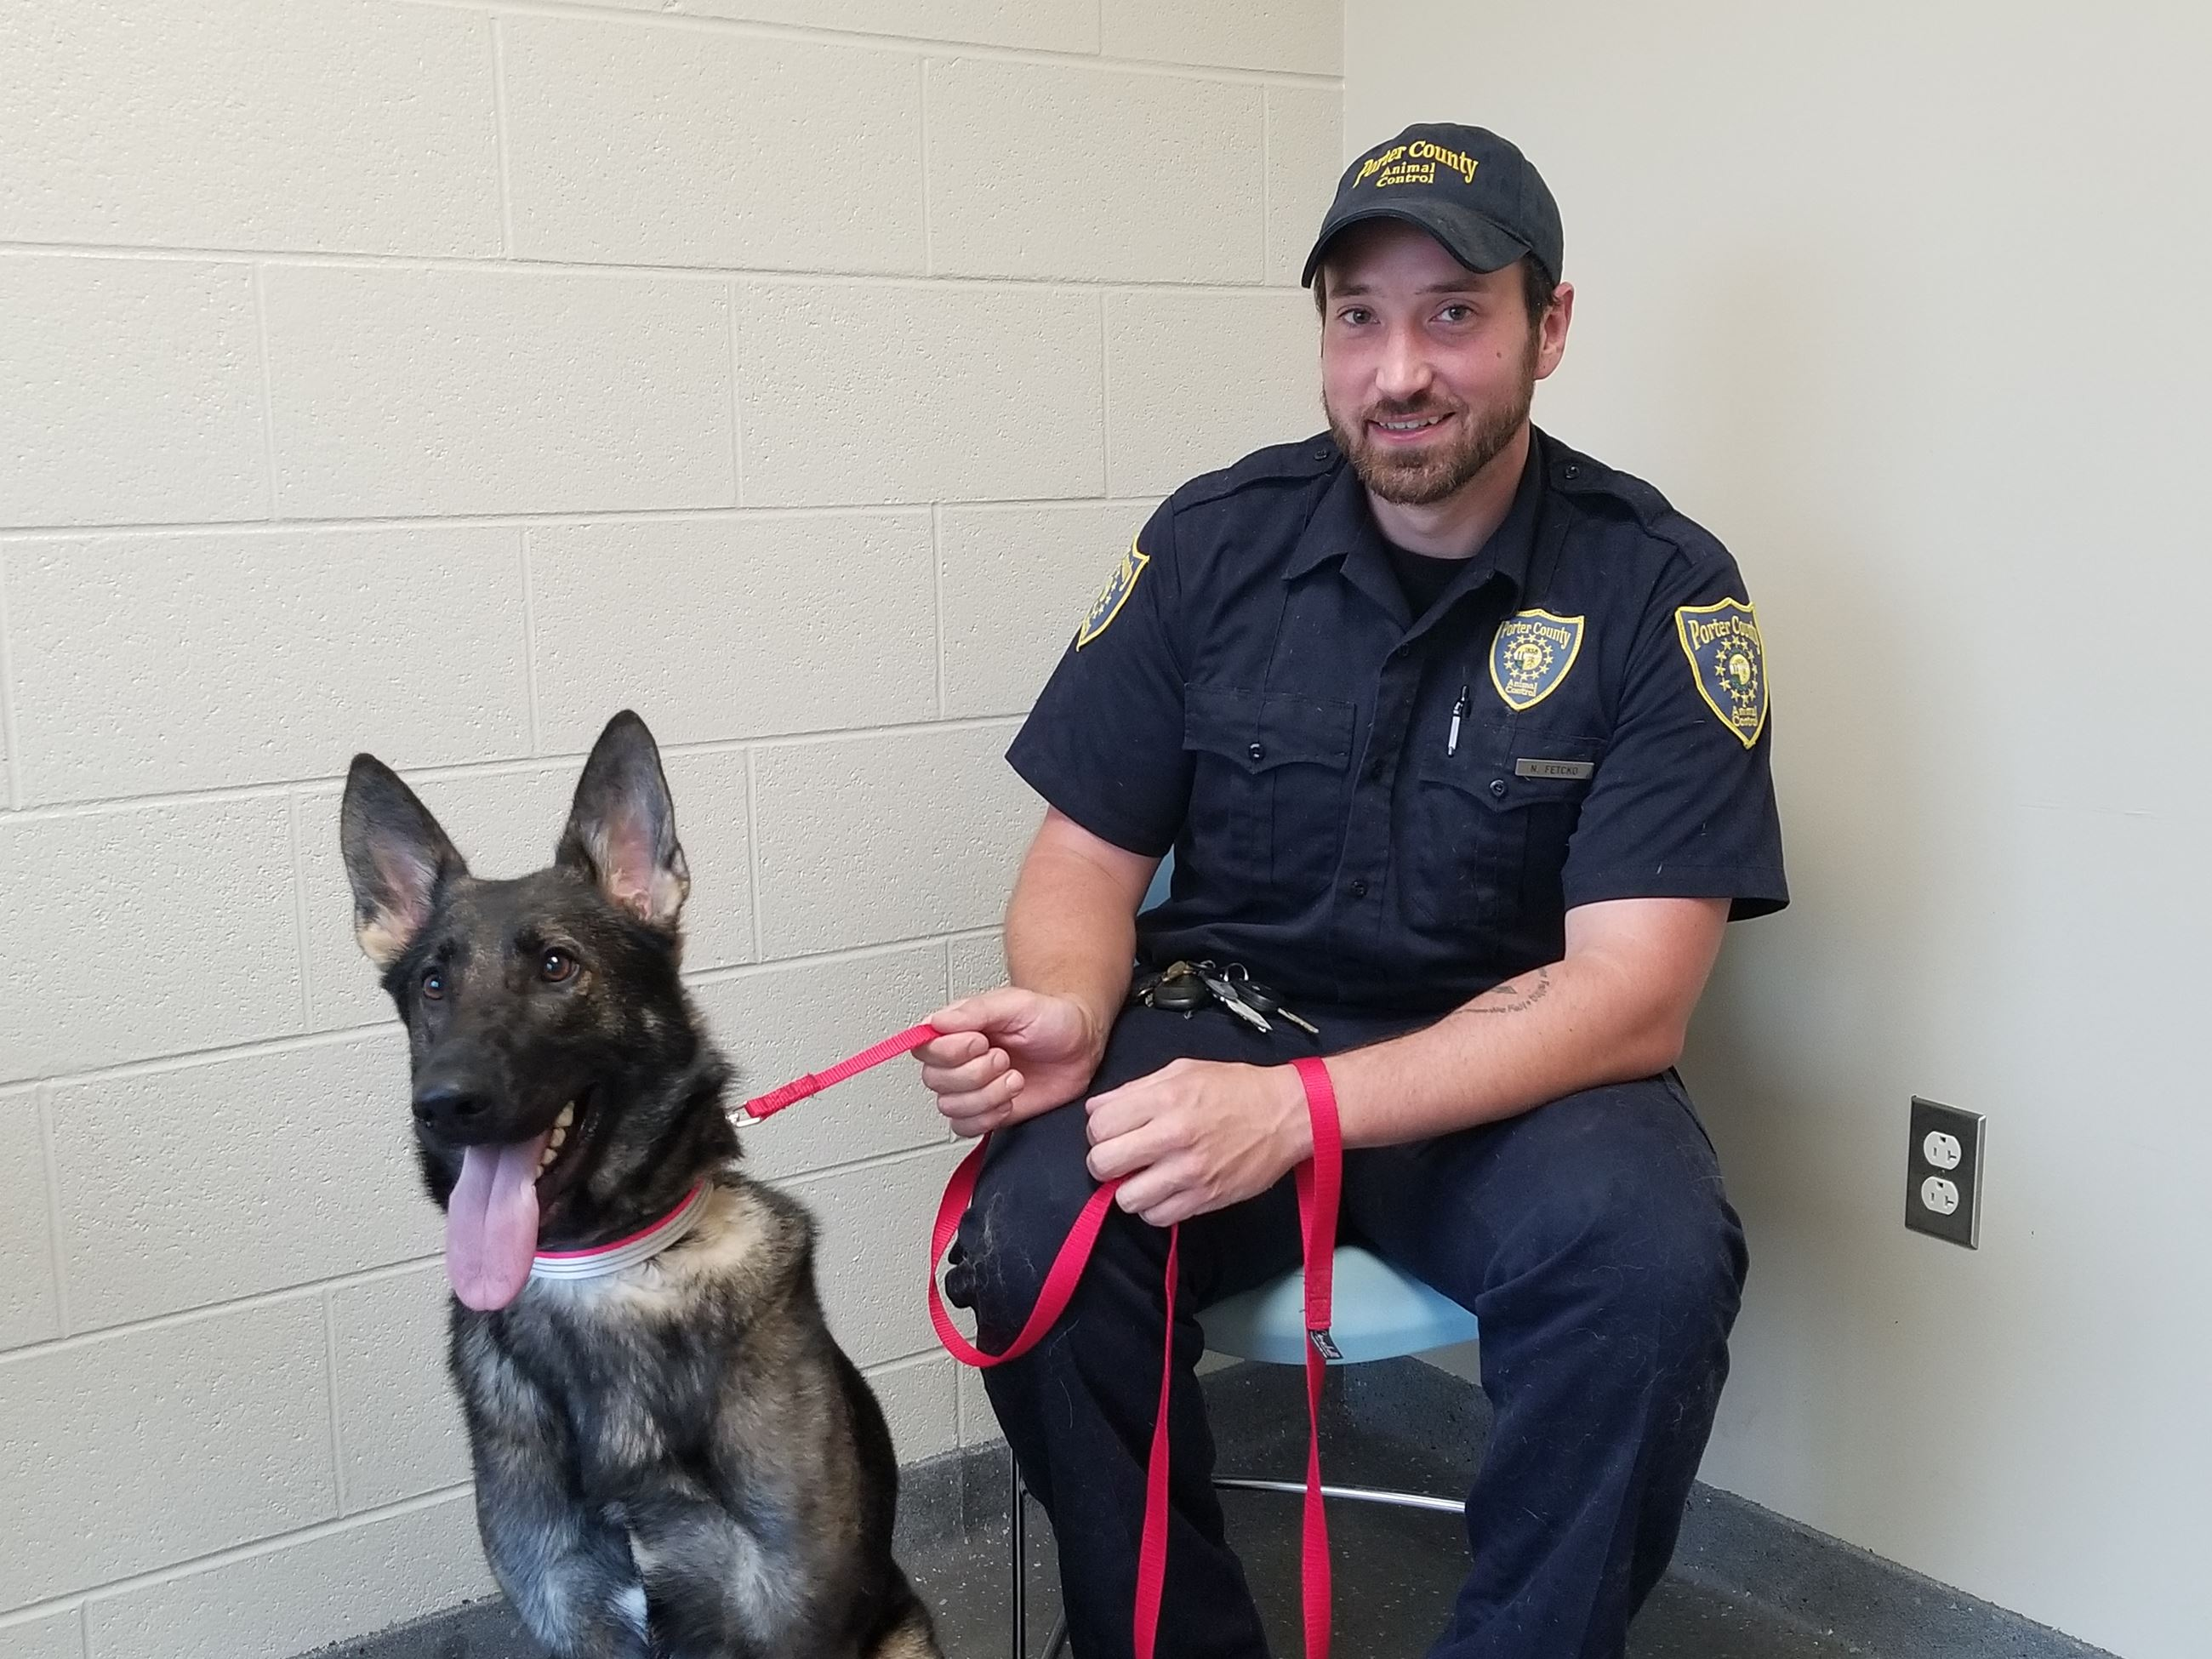 Photo of animal control officer with German Shepherd dog.